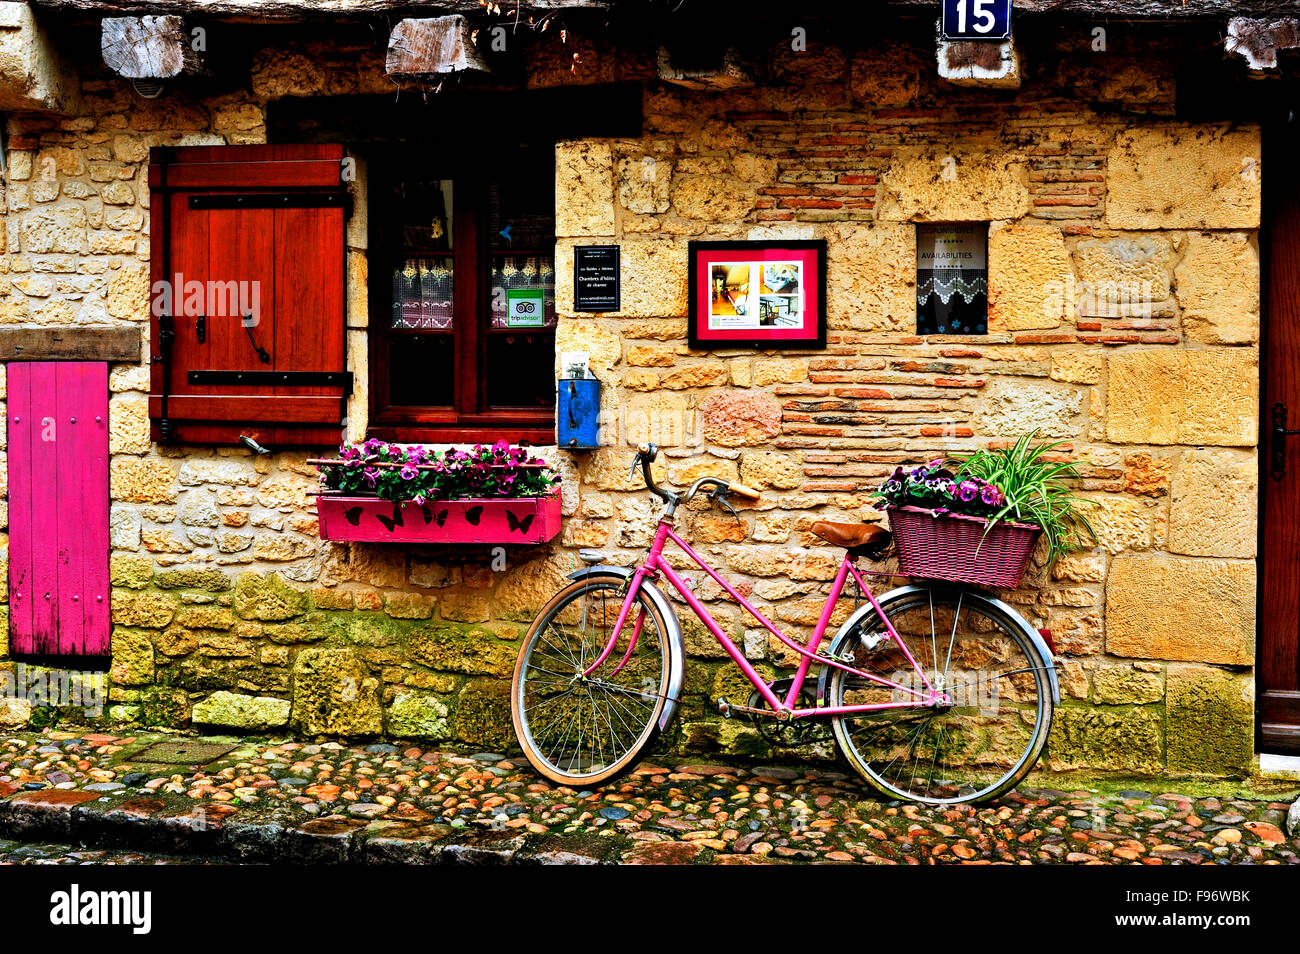 decorative bicycle with flower box, Bergerac, Dordogne Department, Aquitaine, France - Stock Image